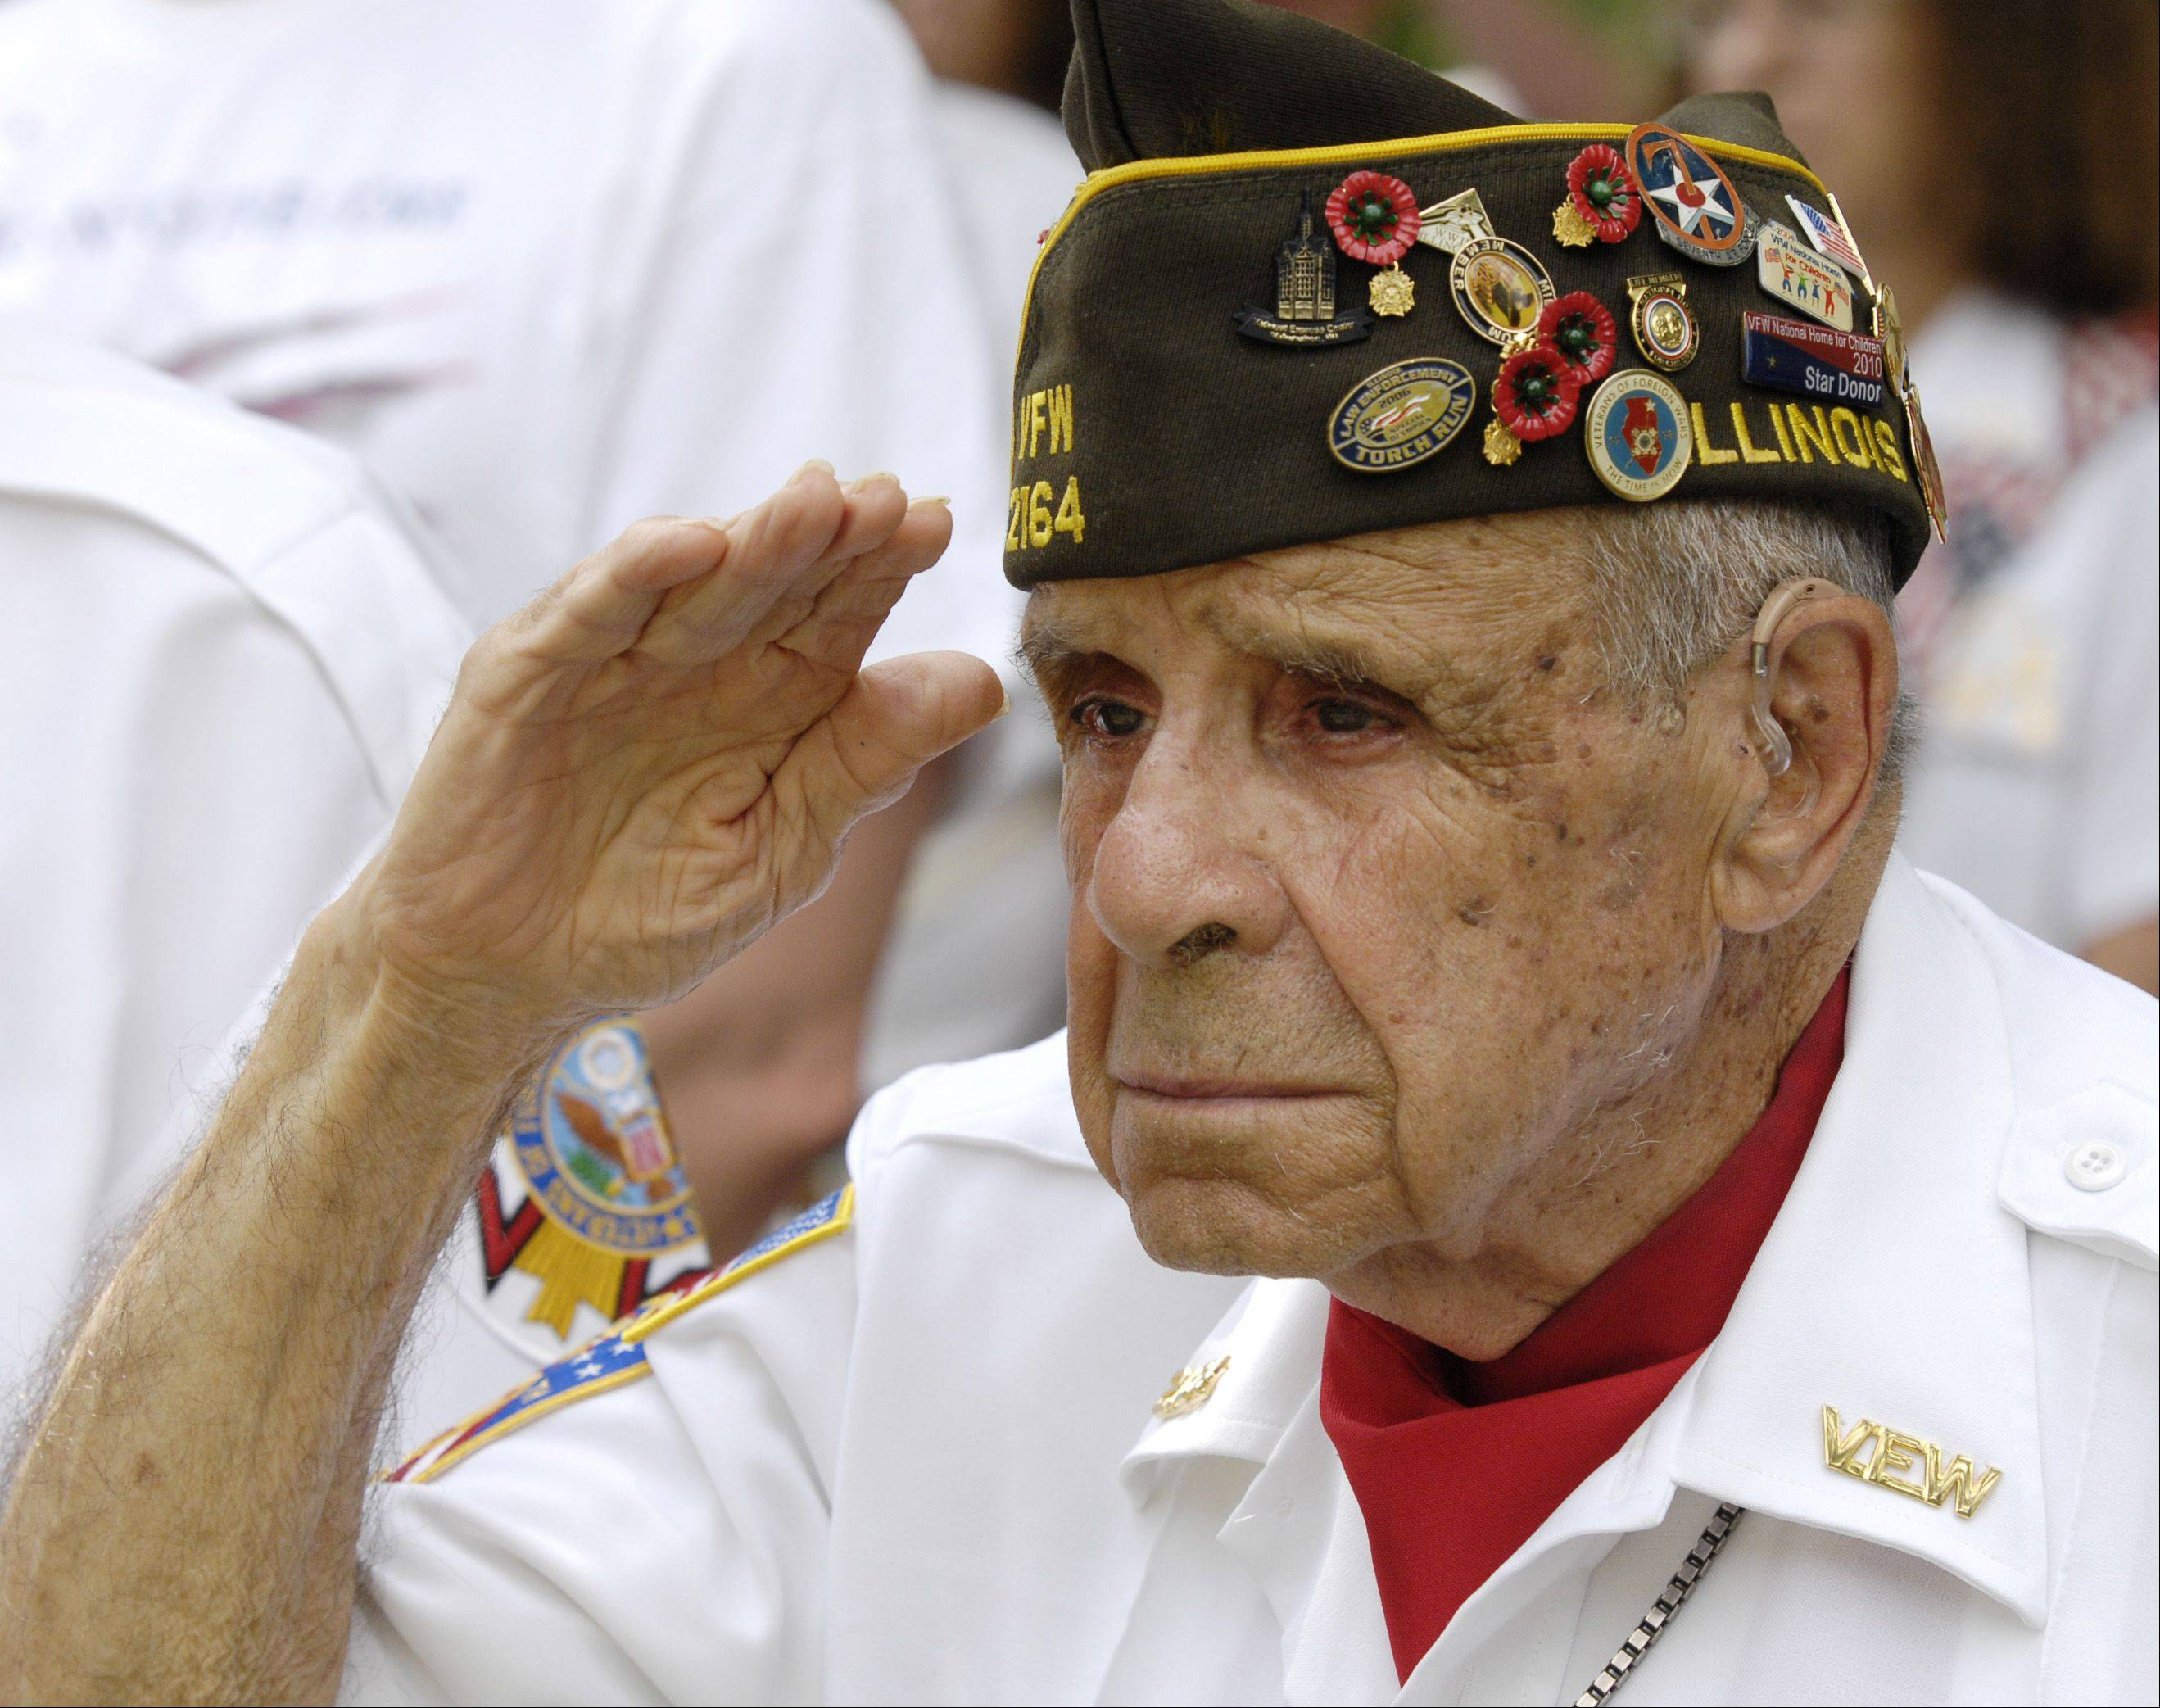 Veterans of Foreign Wars Post 2164 member Louis Licastrom, a World War II Army Air Corps veteran who survived the Japanese attach on Pearl Harbor in 1941, salutes during the Wheaton Memorial Day ceremony at Wheaton Cemetery Monday.